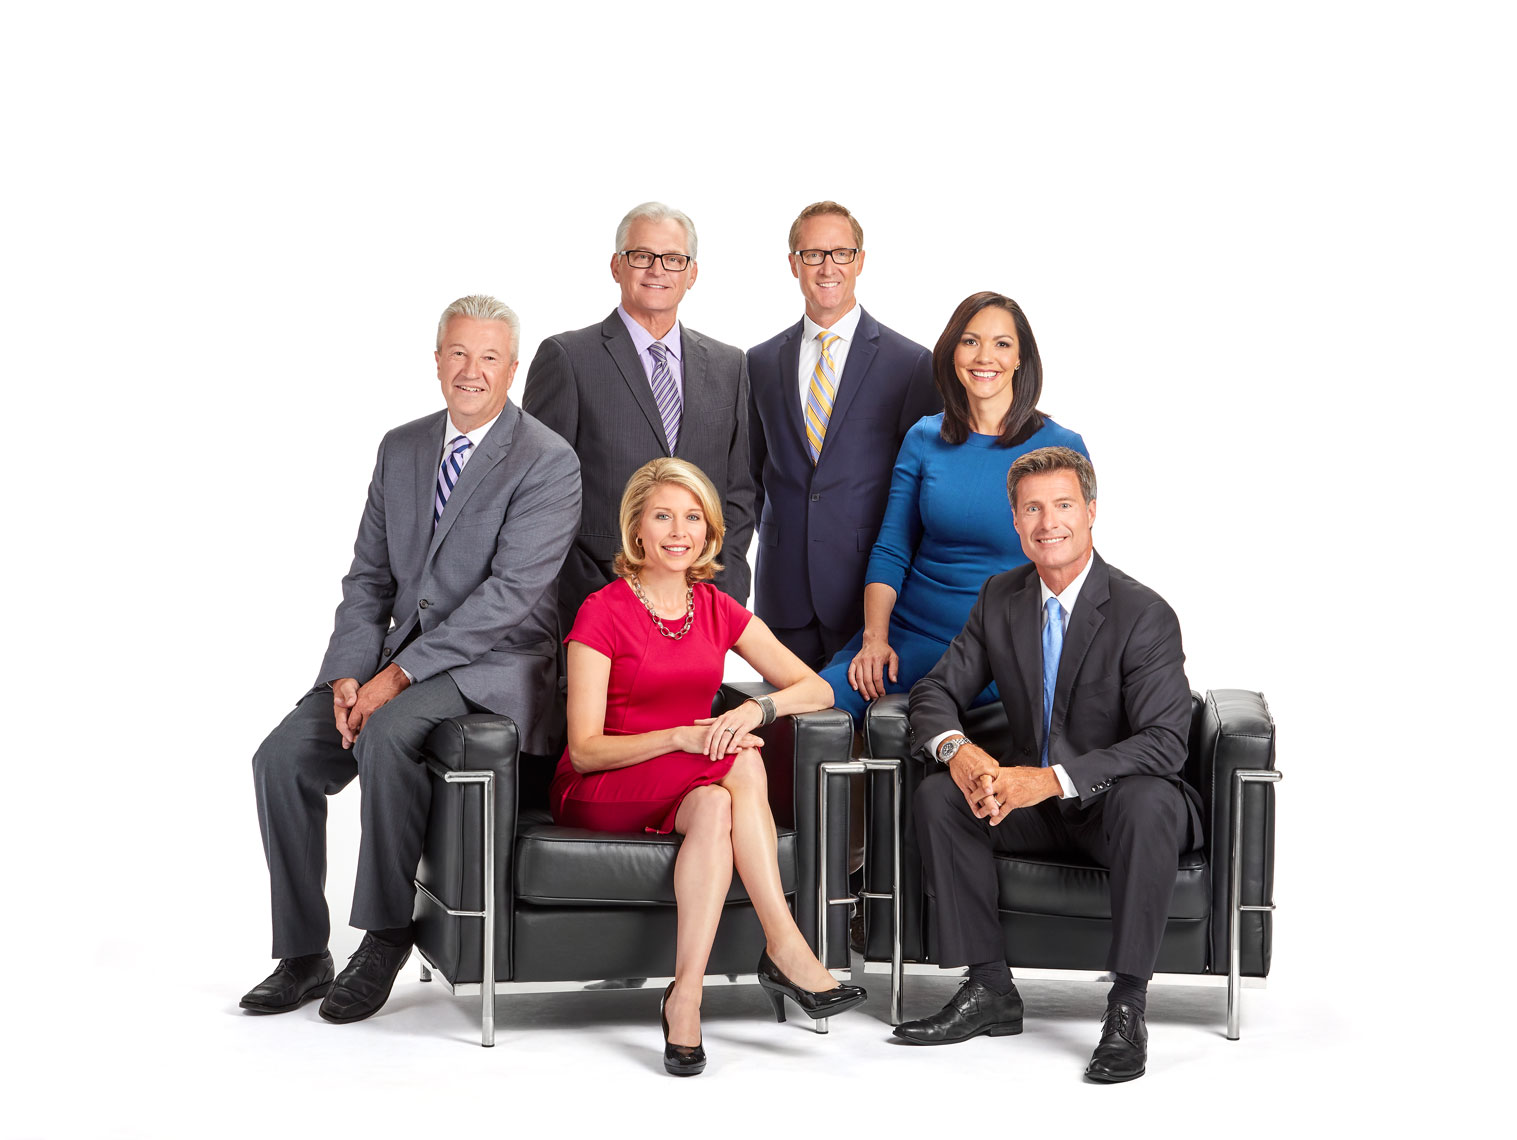 Fox-9-news/crew/white background/group/lifestyle photography